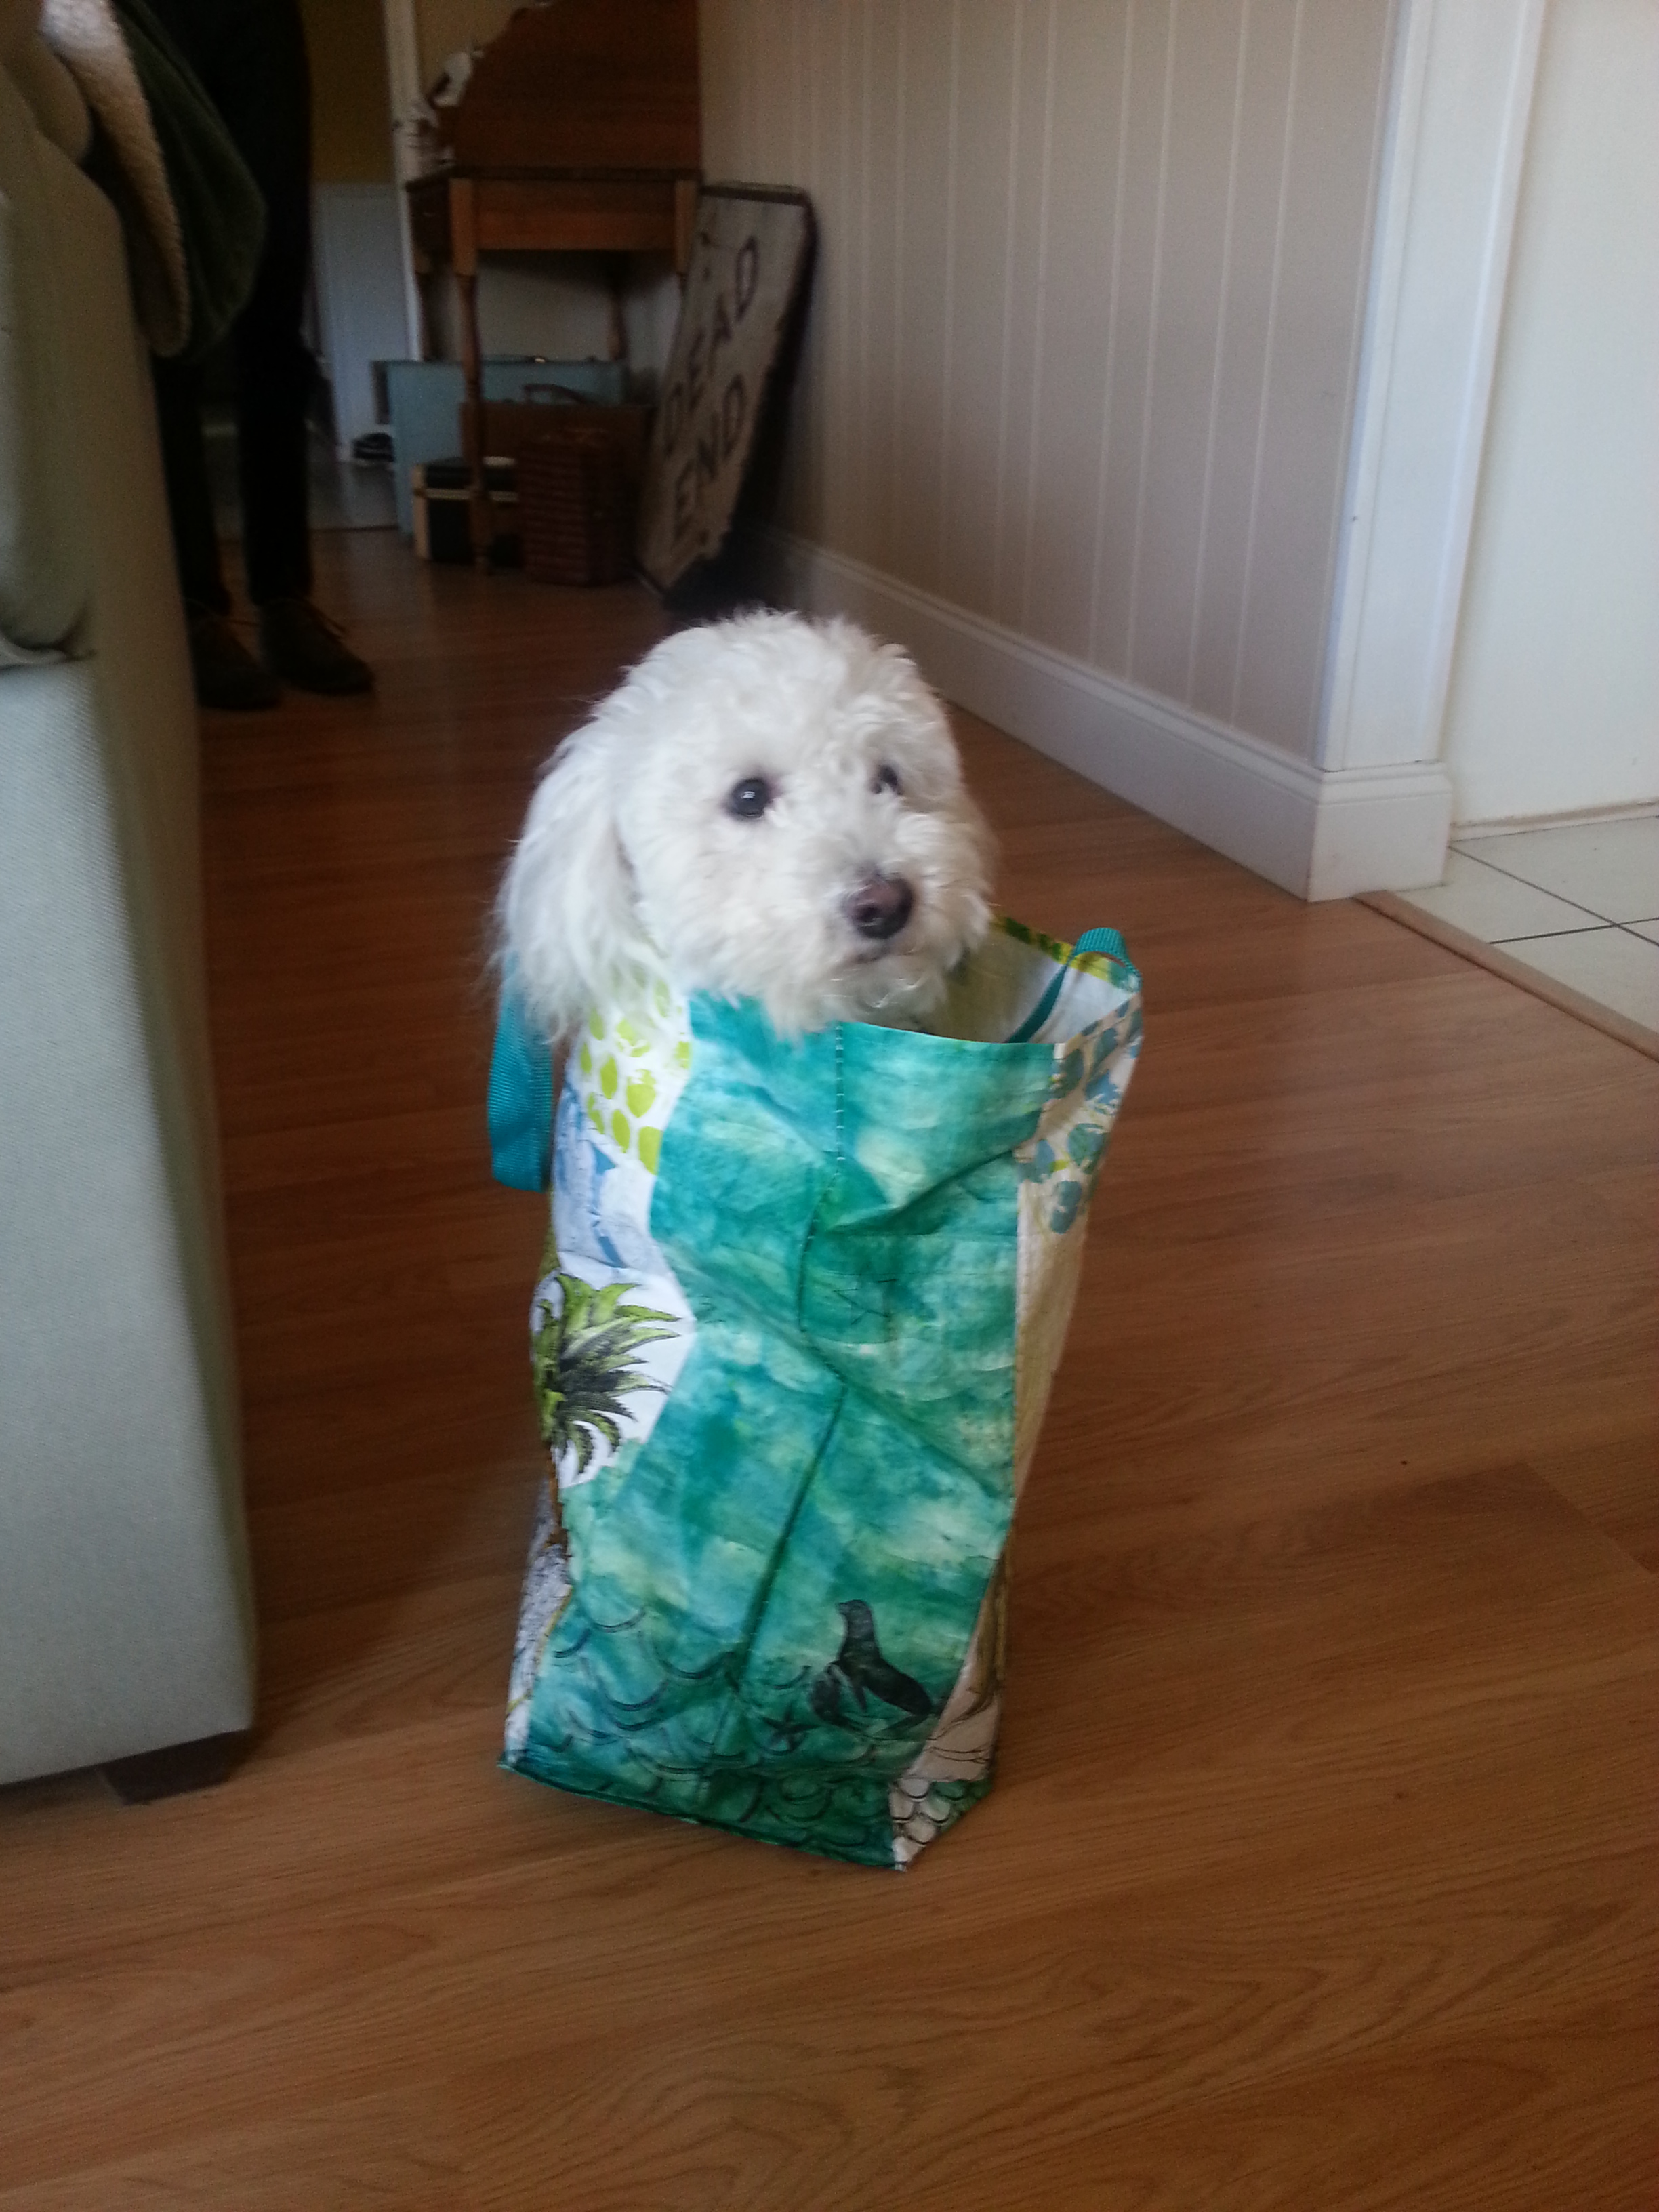 My dog Petey.  He'll chew your leg right off, if he can bother to get out of the shopping bag.